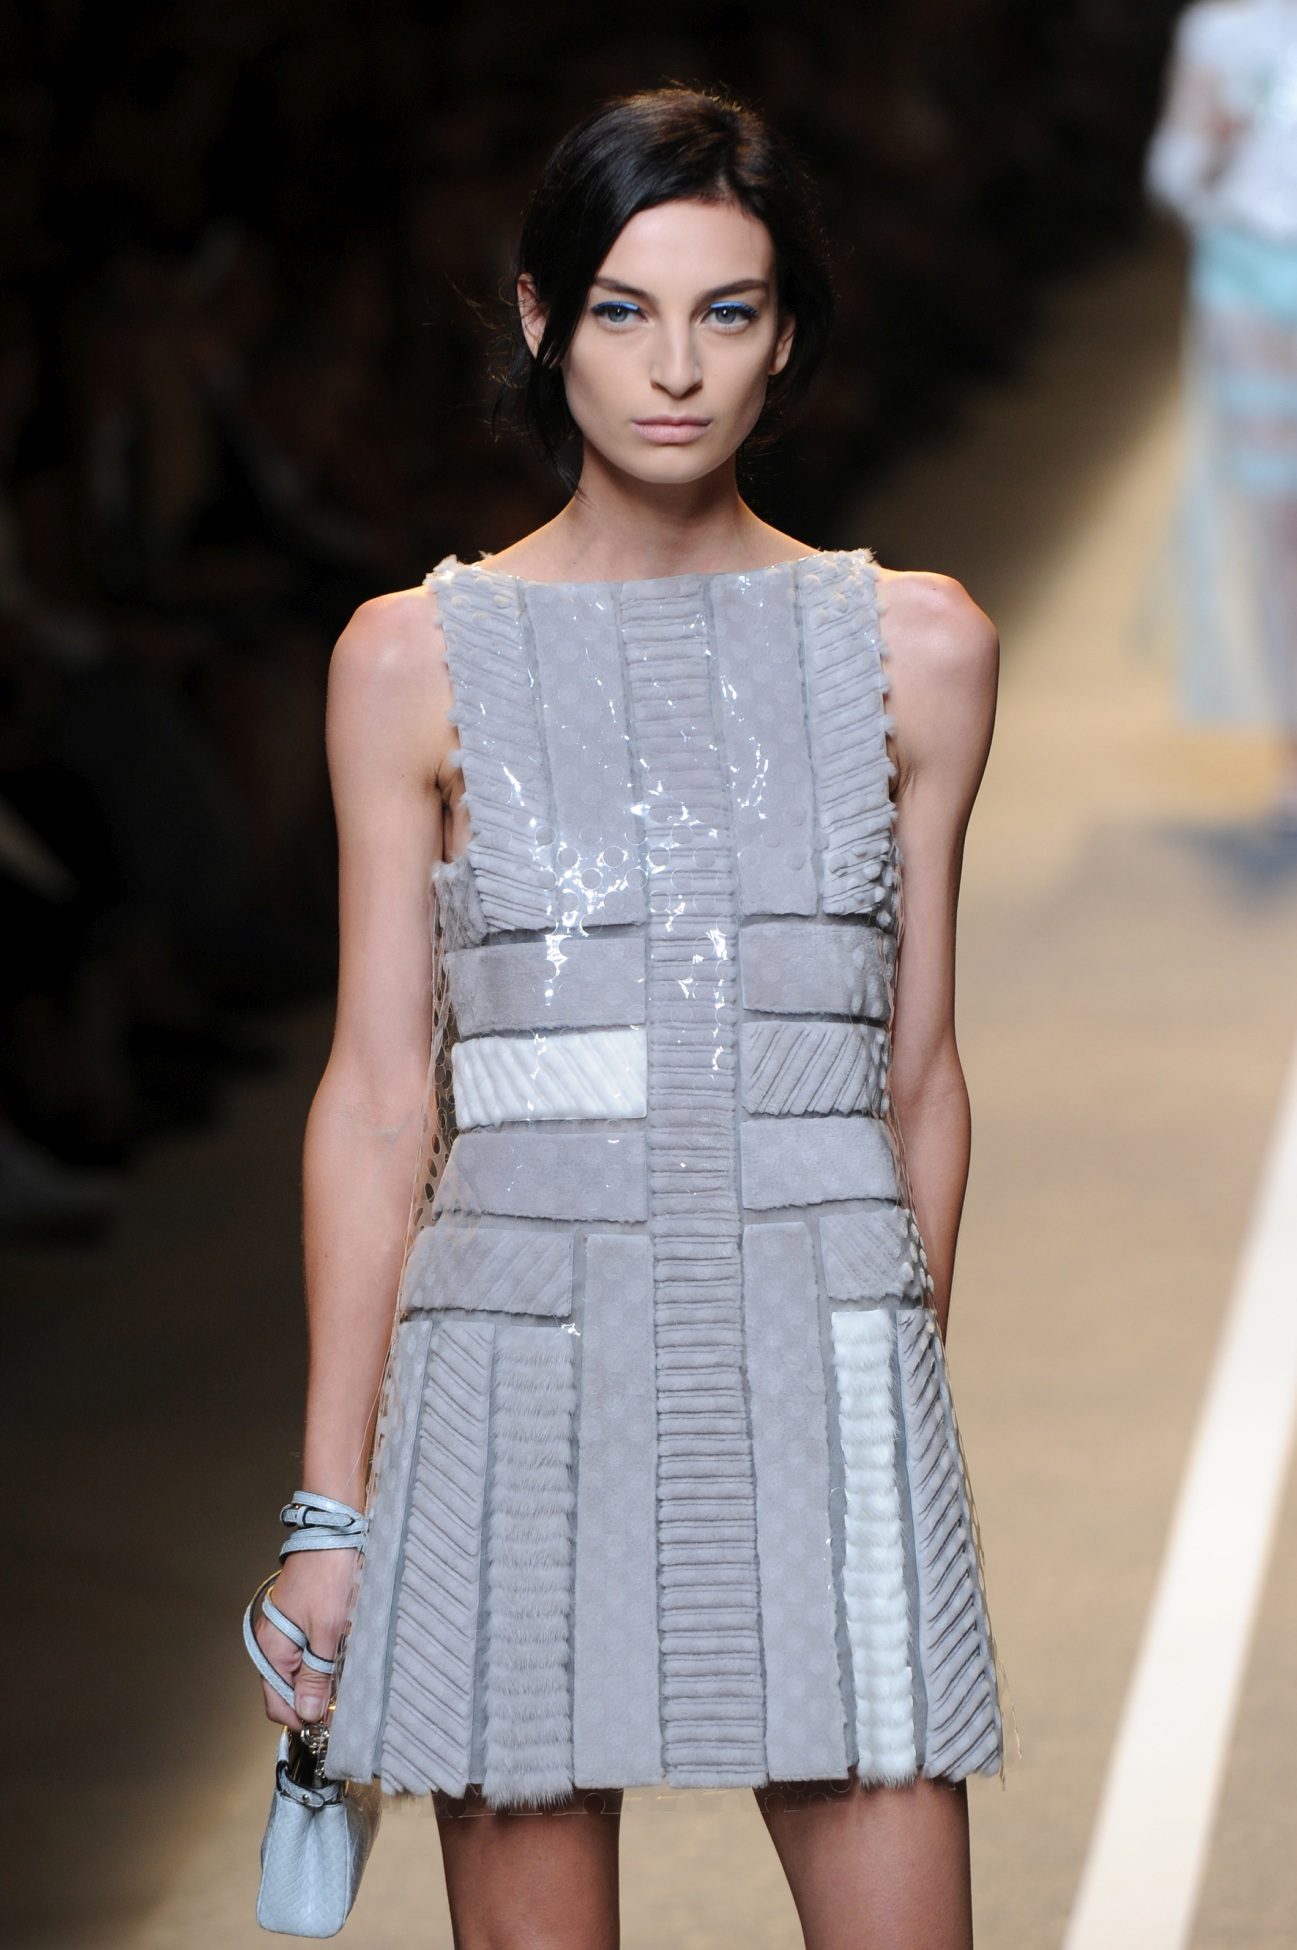 Fendi SS 2015 @ Milan Fashion Week